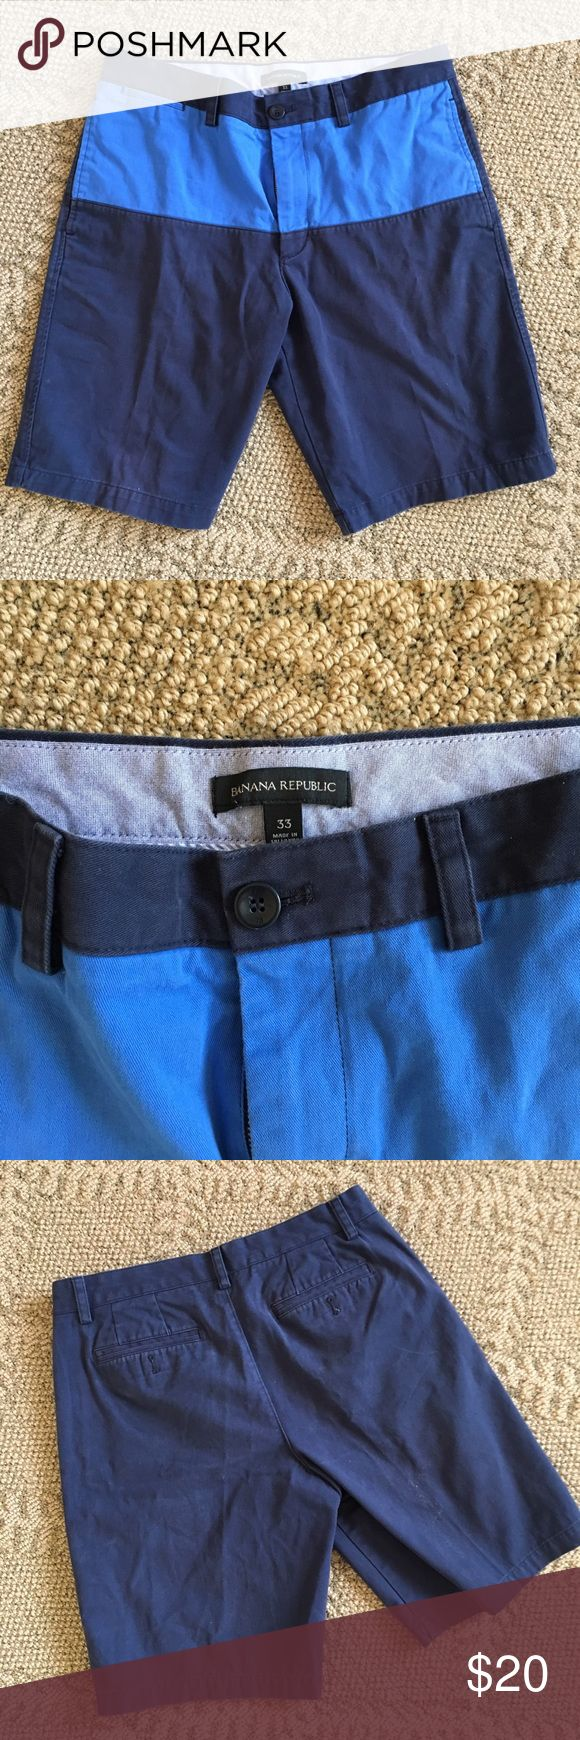 ➡️Banana Republic shorts⬅️ Color blocked mens Banana Republic shorts in size 33! Love this summer style! Banana Republic Shorts